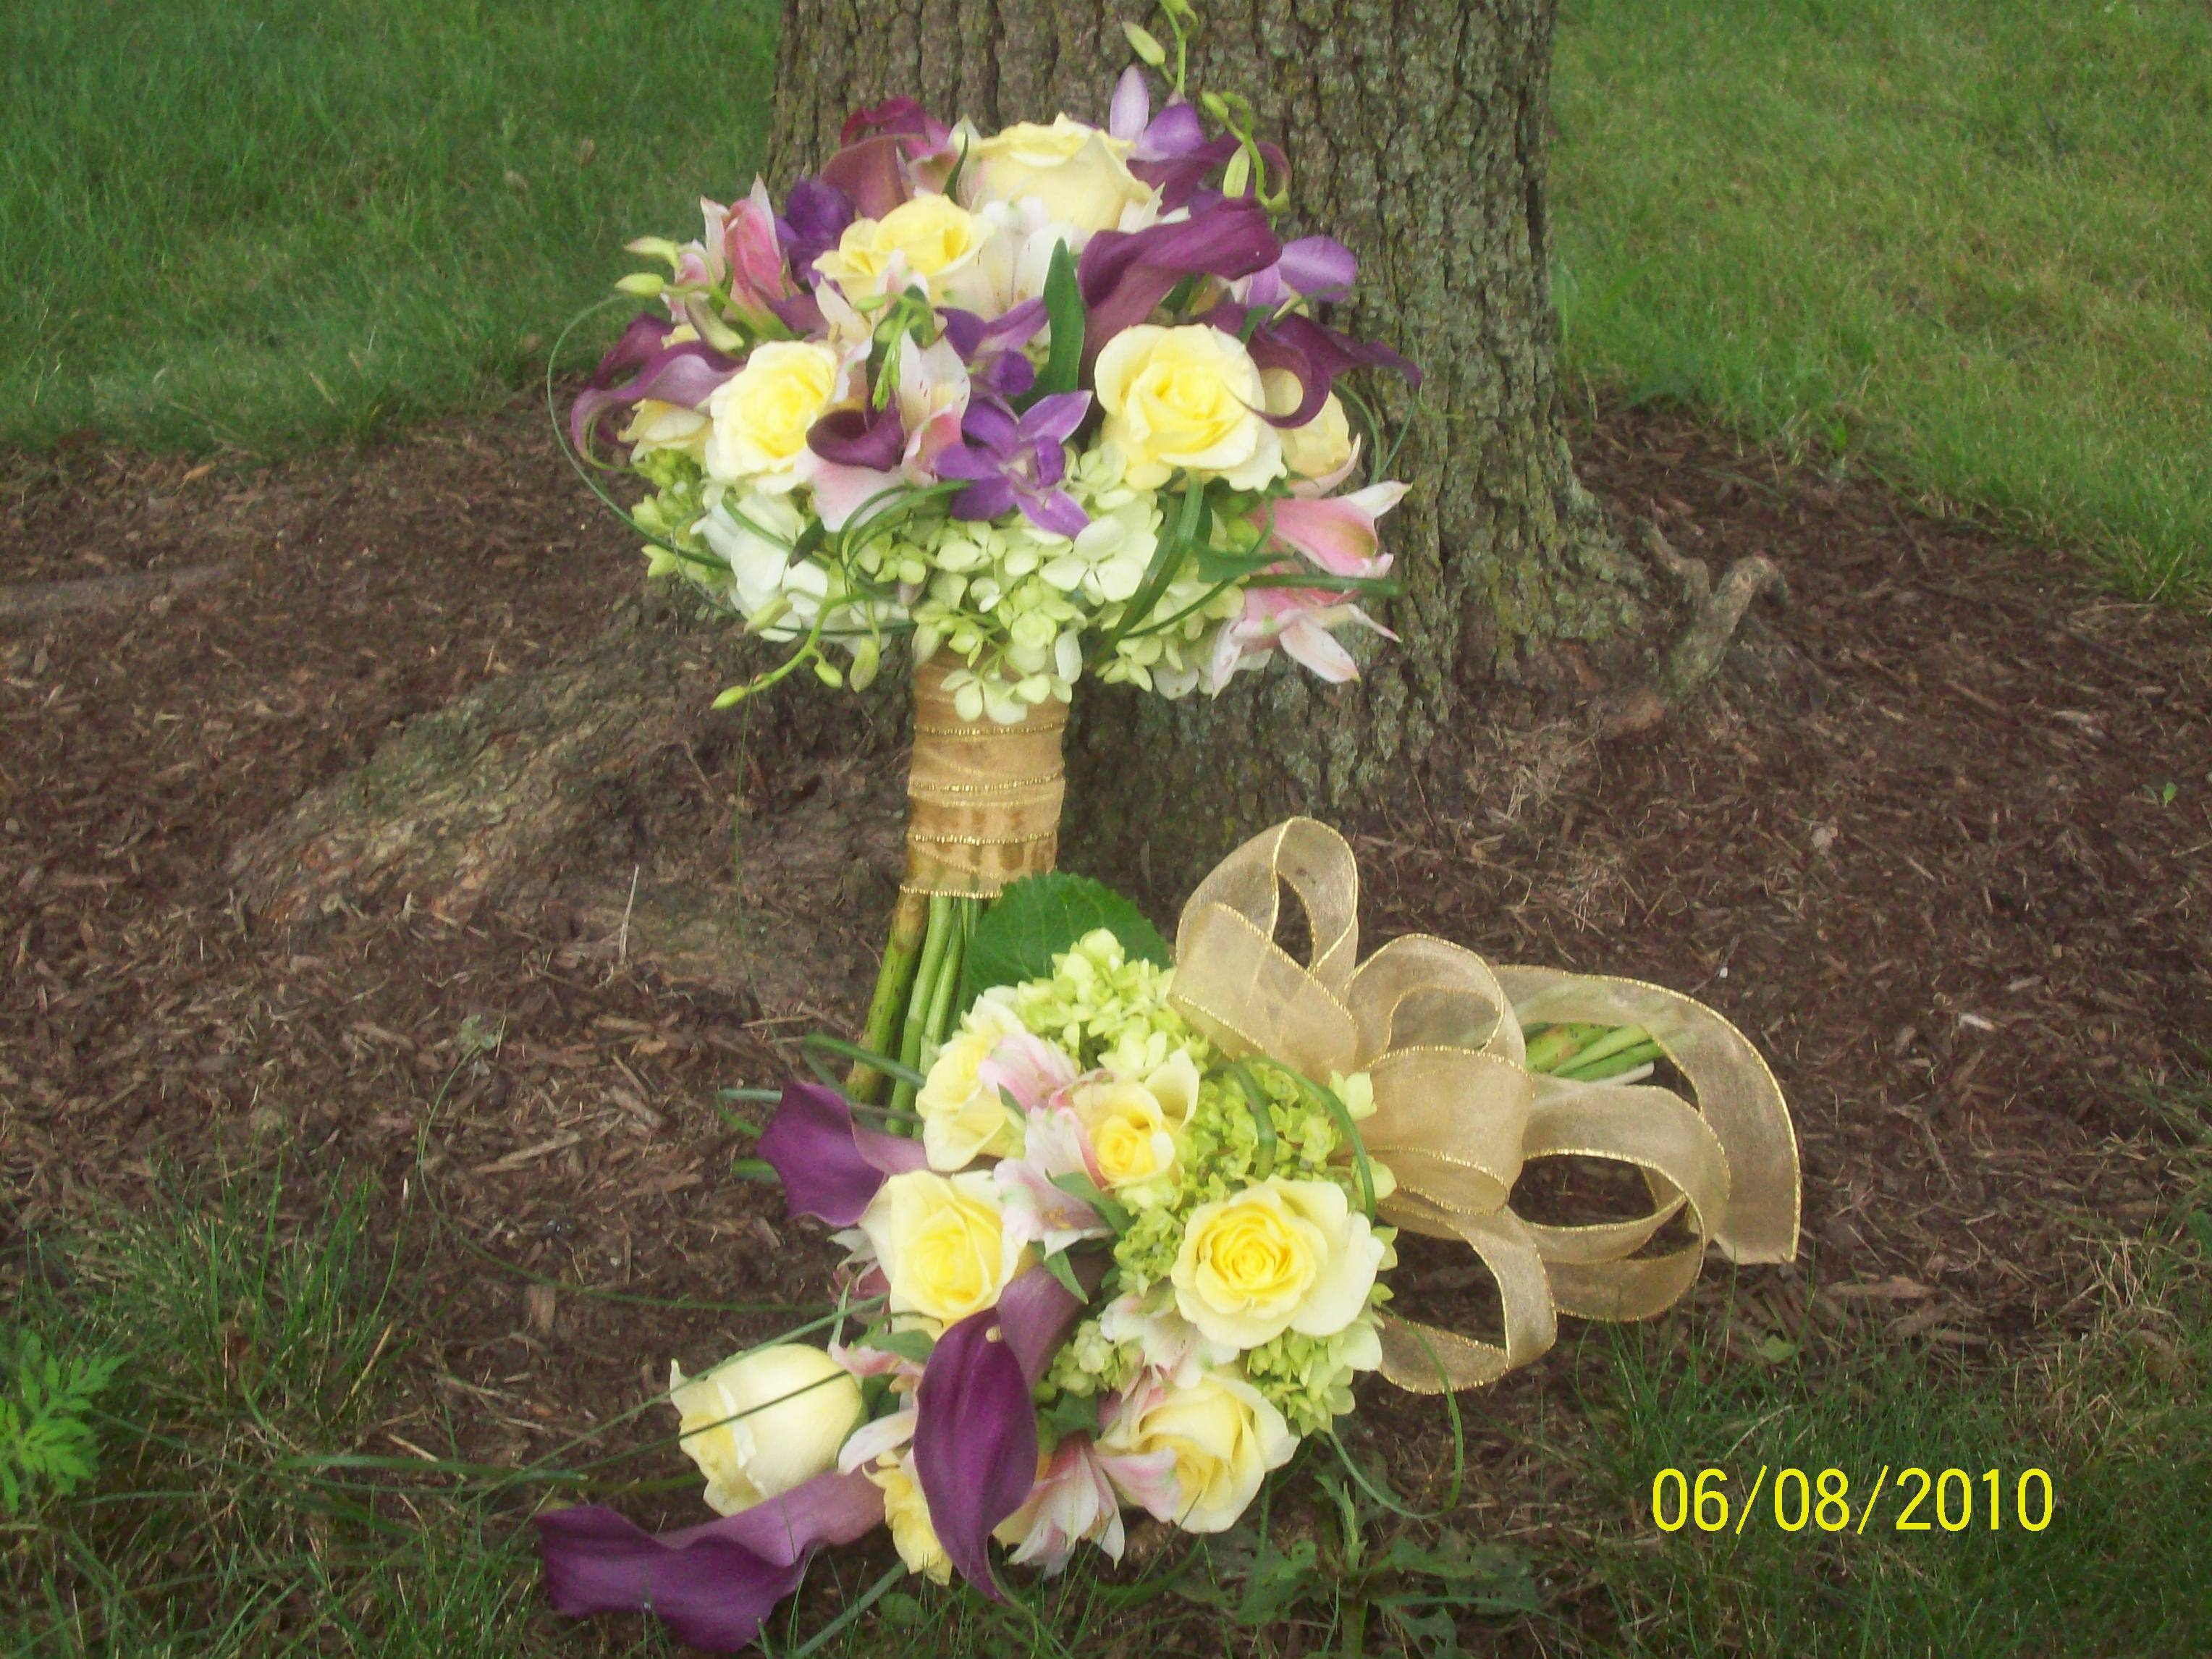 Ceremony, Flowers & Decor, Bridesmaids, Bridesmaids Dresses, Fashion, yellow, purple, Ceremony Flowers, Bride Bouquets, Bridesmaid Bouquets, Flowers, Brides, Bouquets, Flower Wedding Dresses